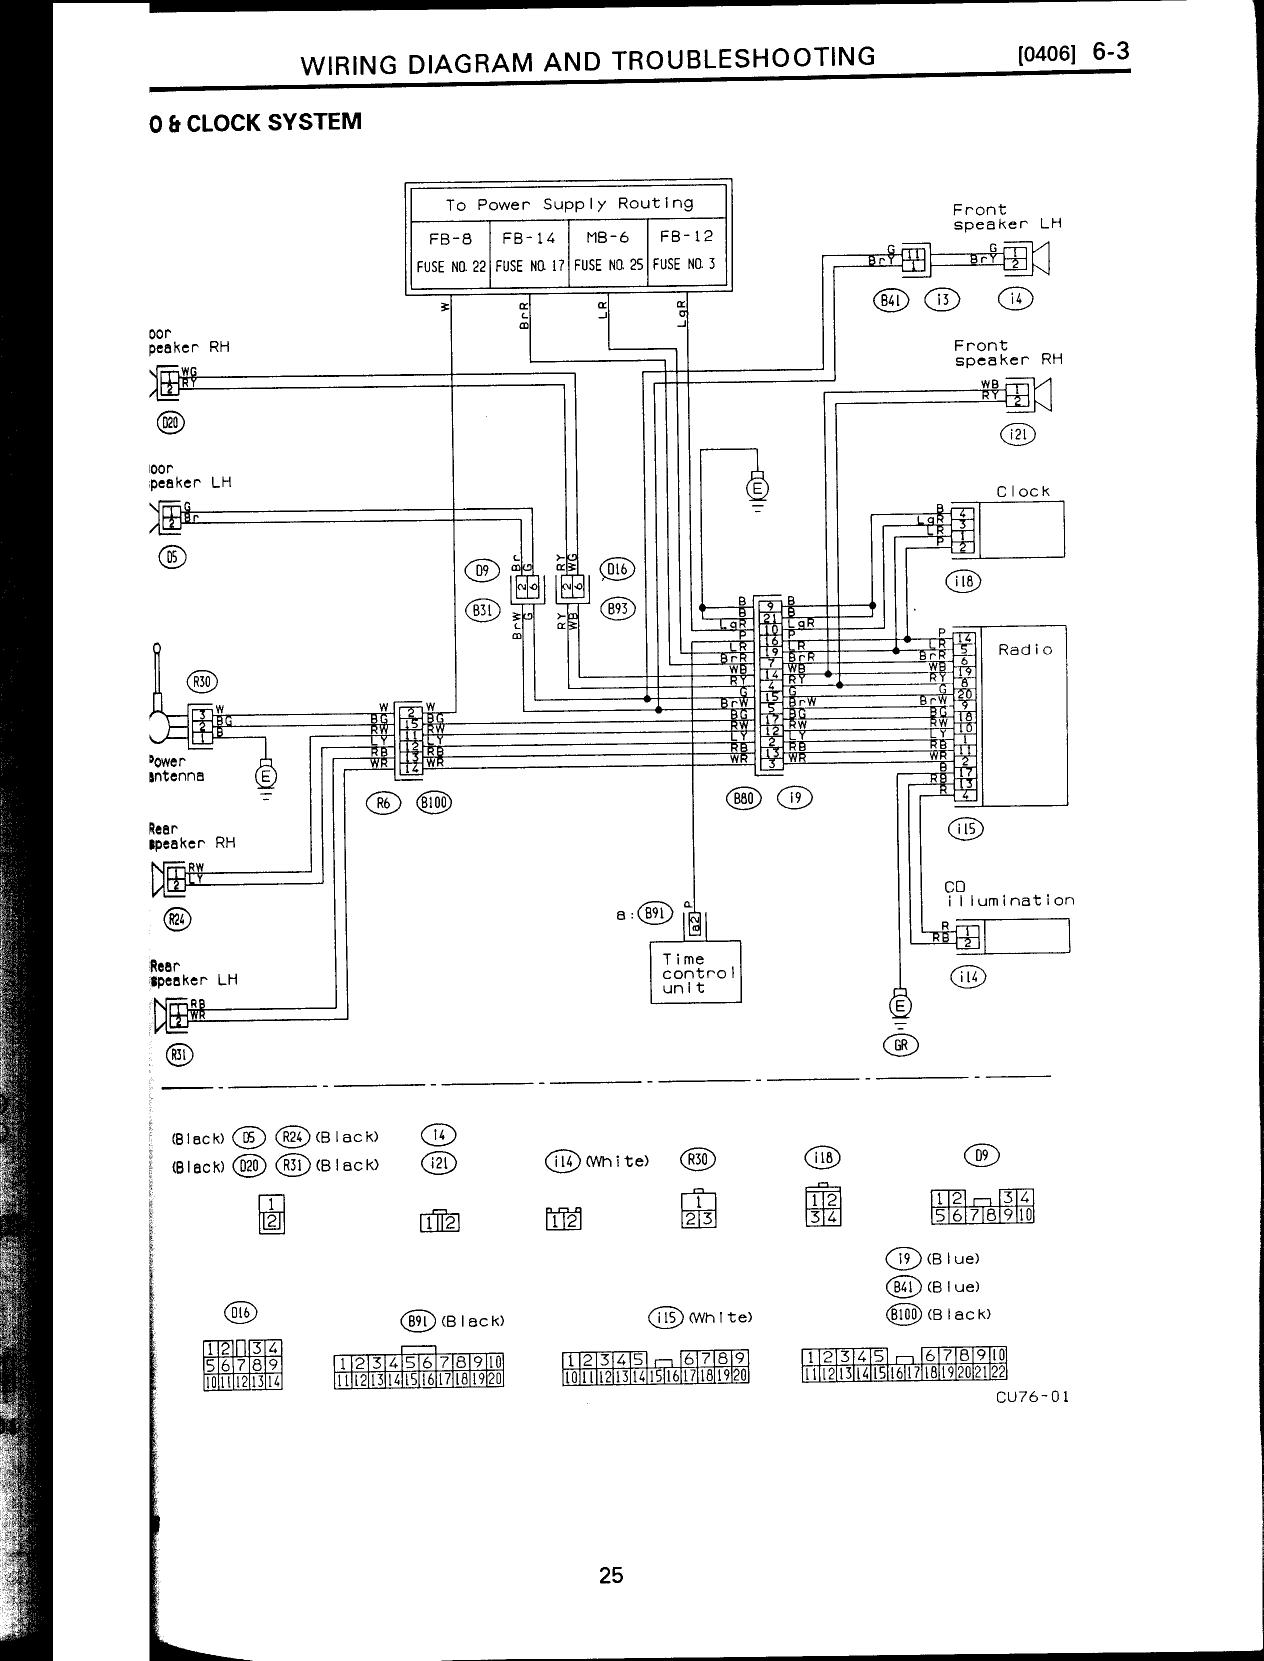 Subaru Electrical Schematics - Trusted Wiring Diagram